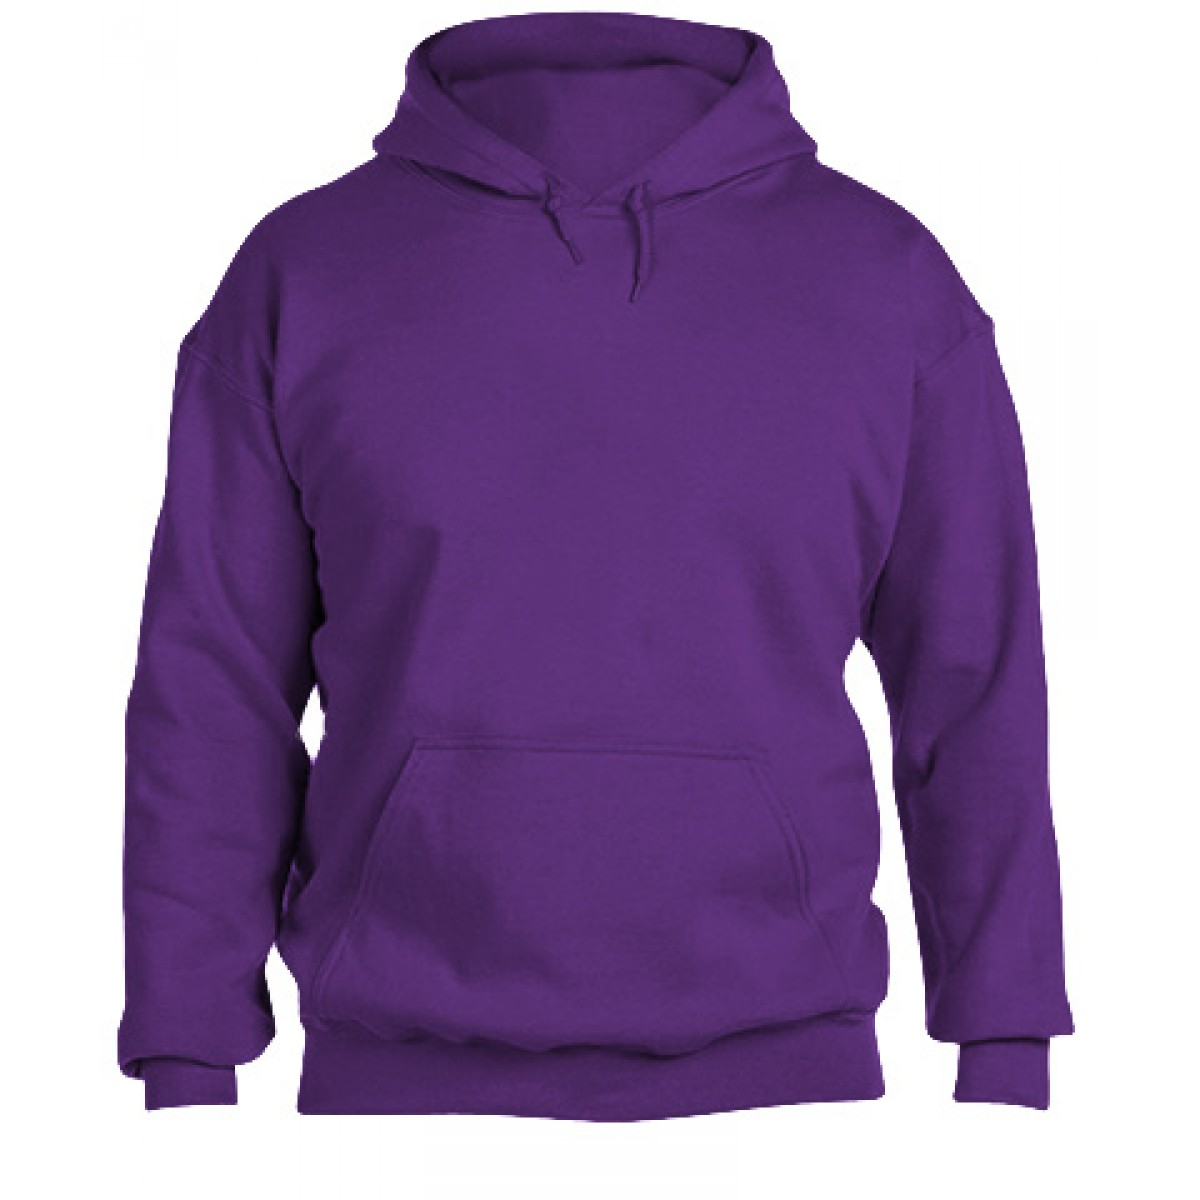 Hooded Sweatshirt 50/50 Heavy Blend -Purple-S